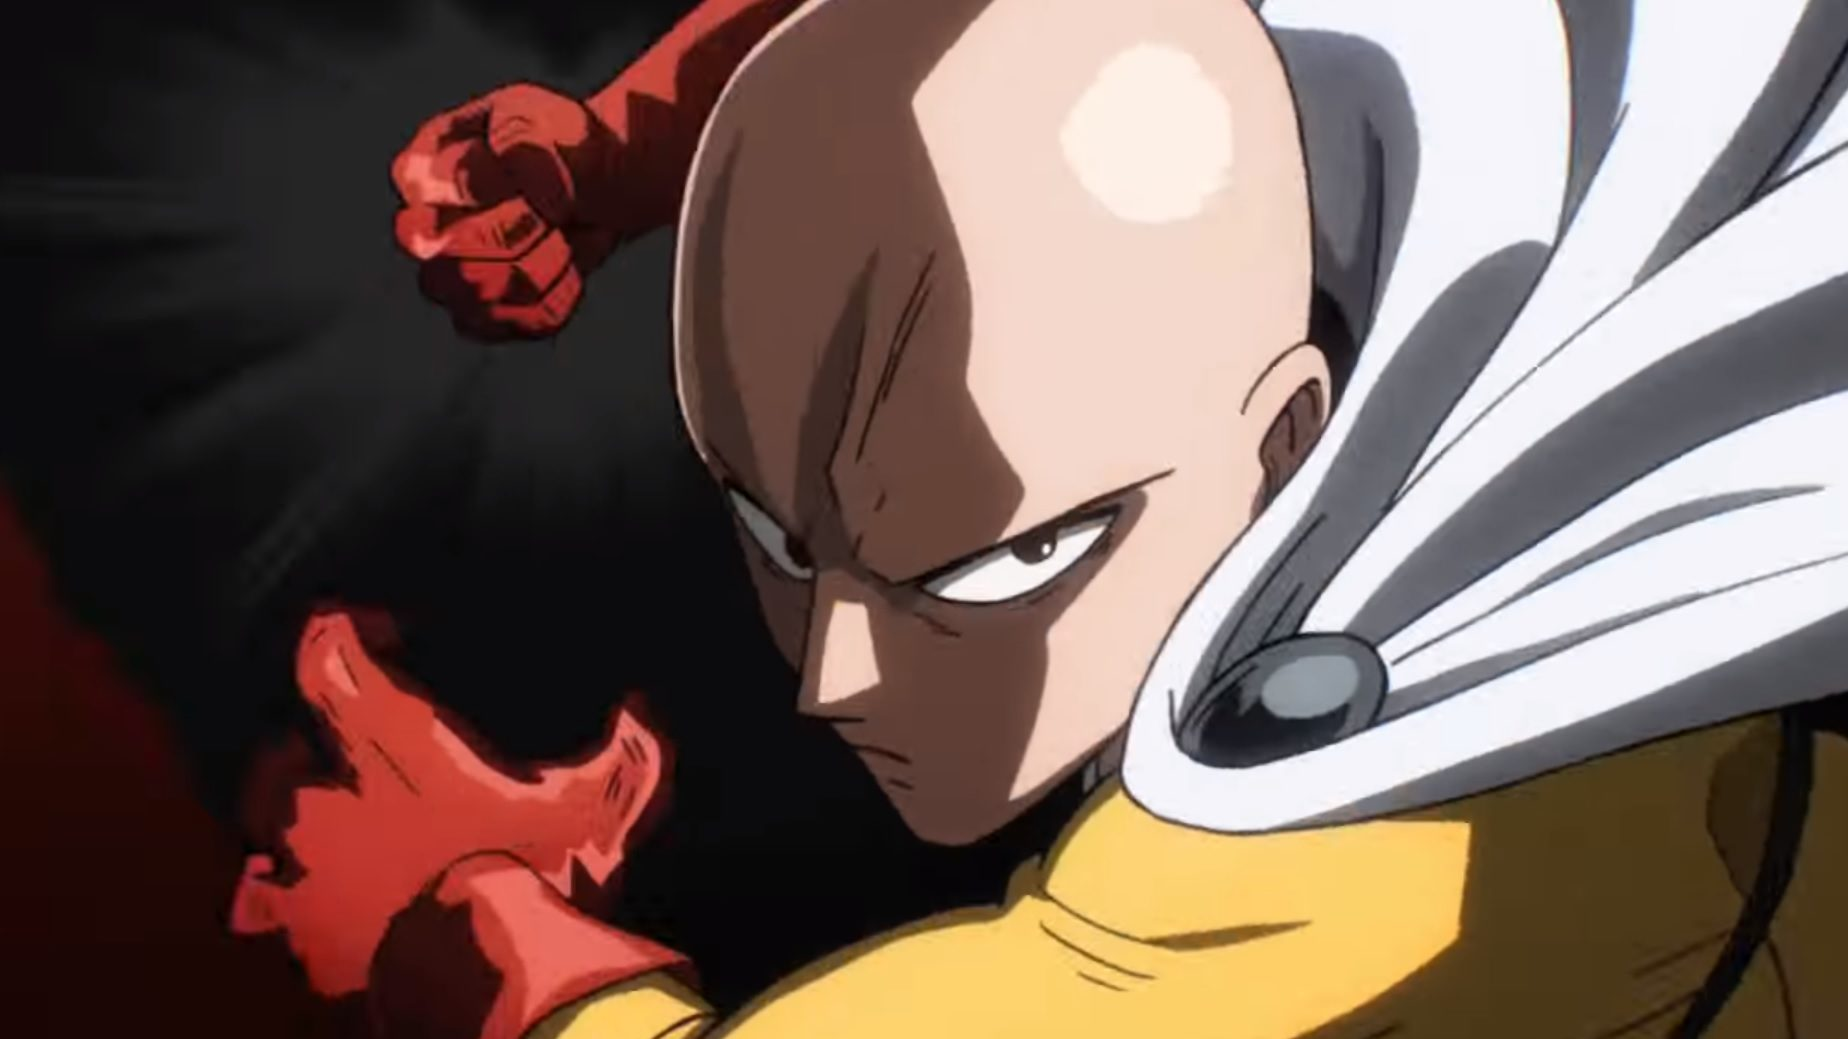 One Punch Man season 2 episode 9 release date delayed